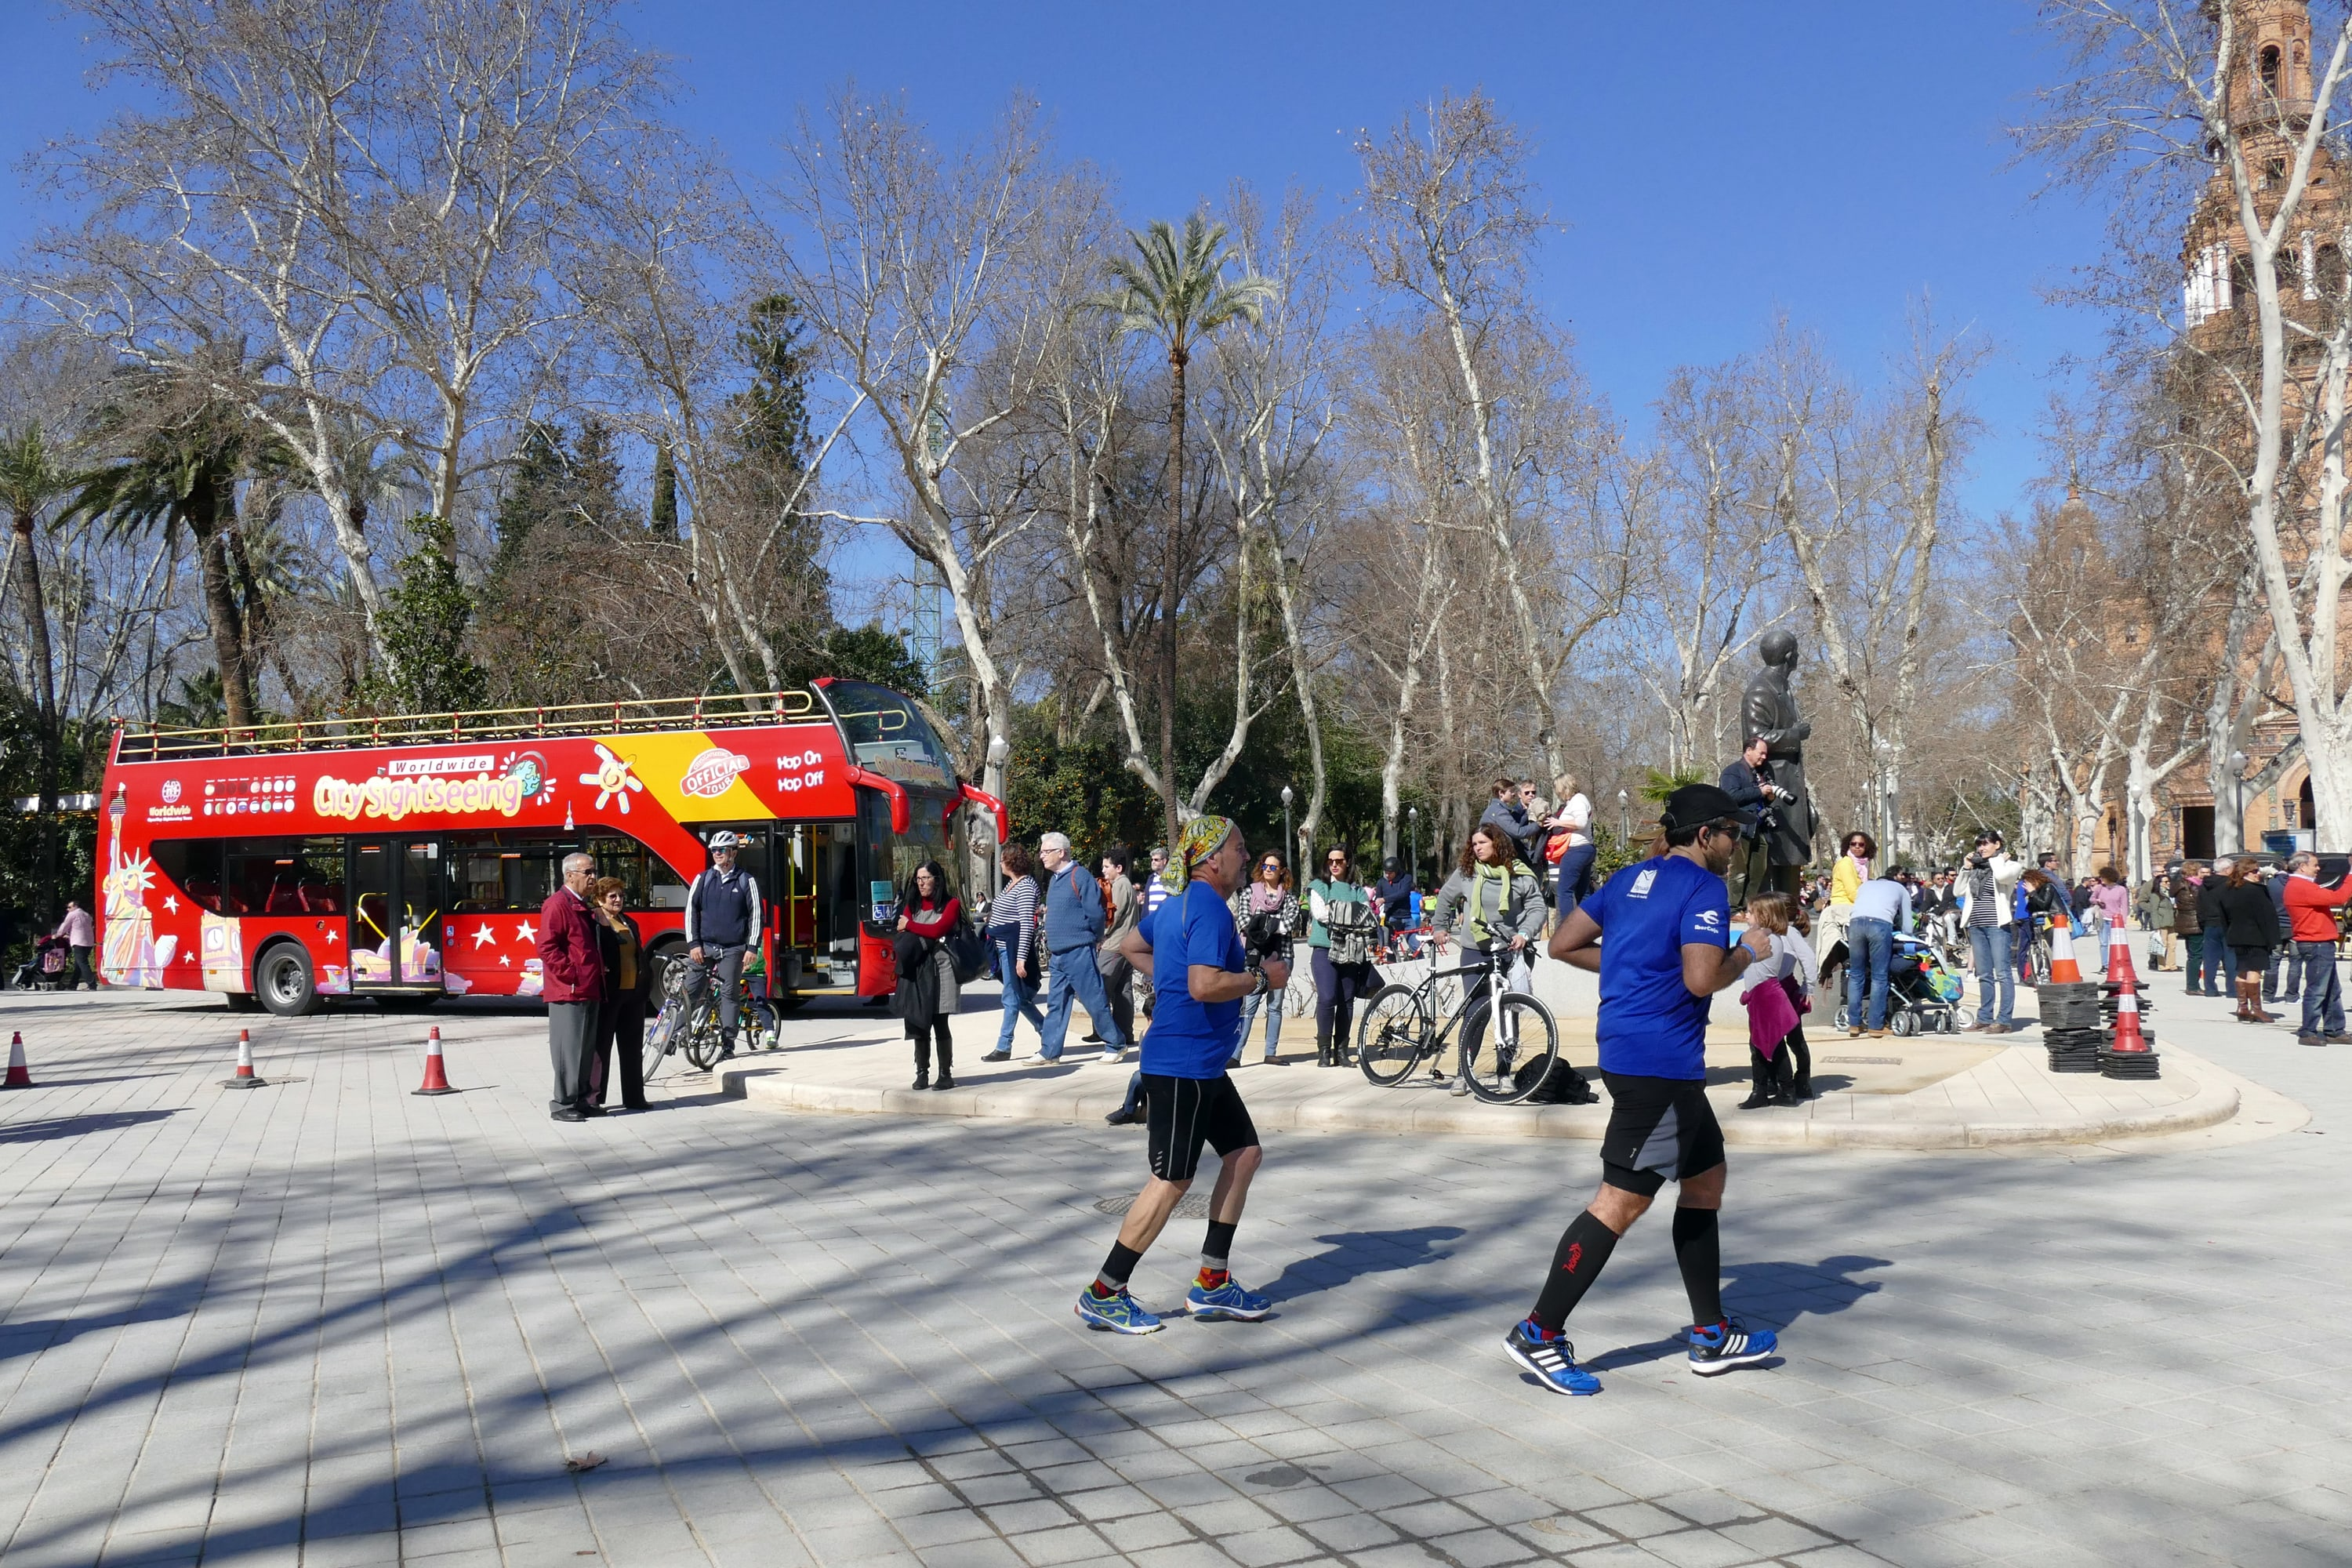 City Sightseeing, maraton de sevilla